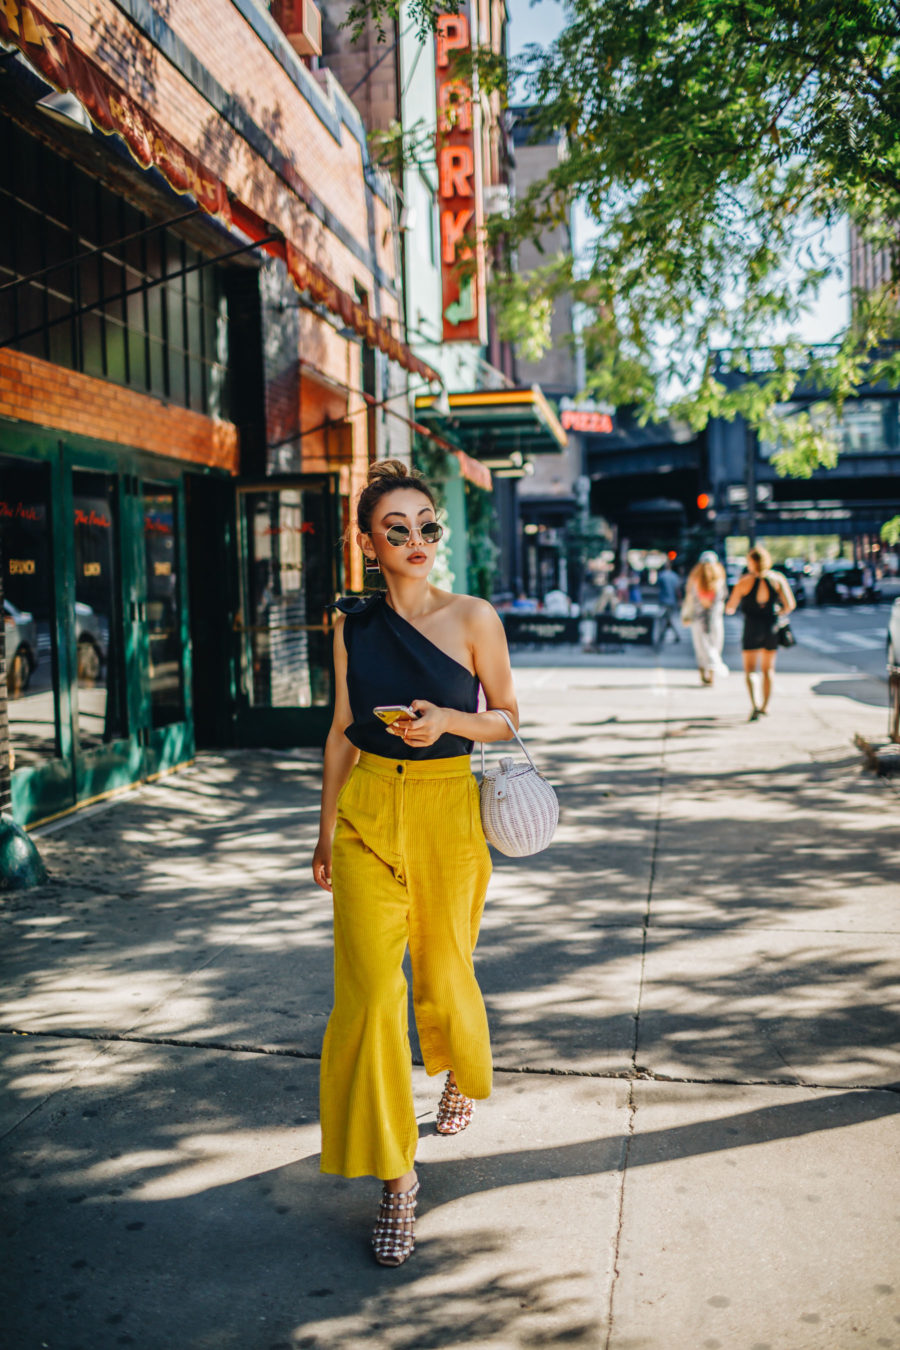 Summer Date in the City - Date night outfit, uber safety toolkit // Notjessfashion.com